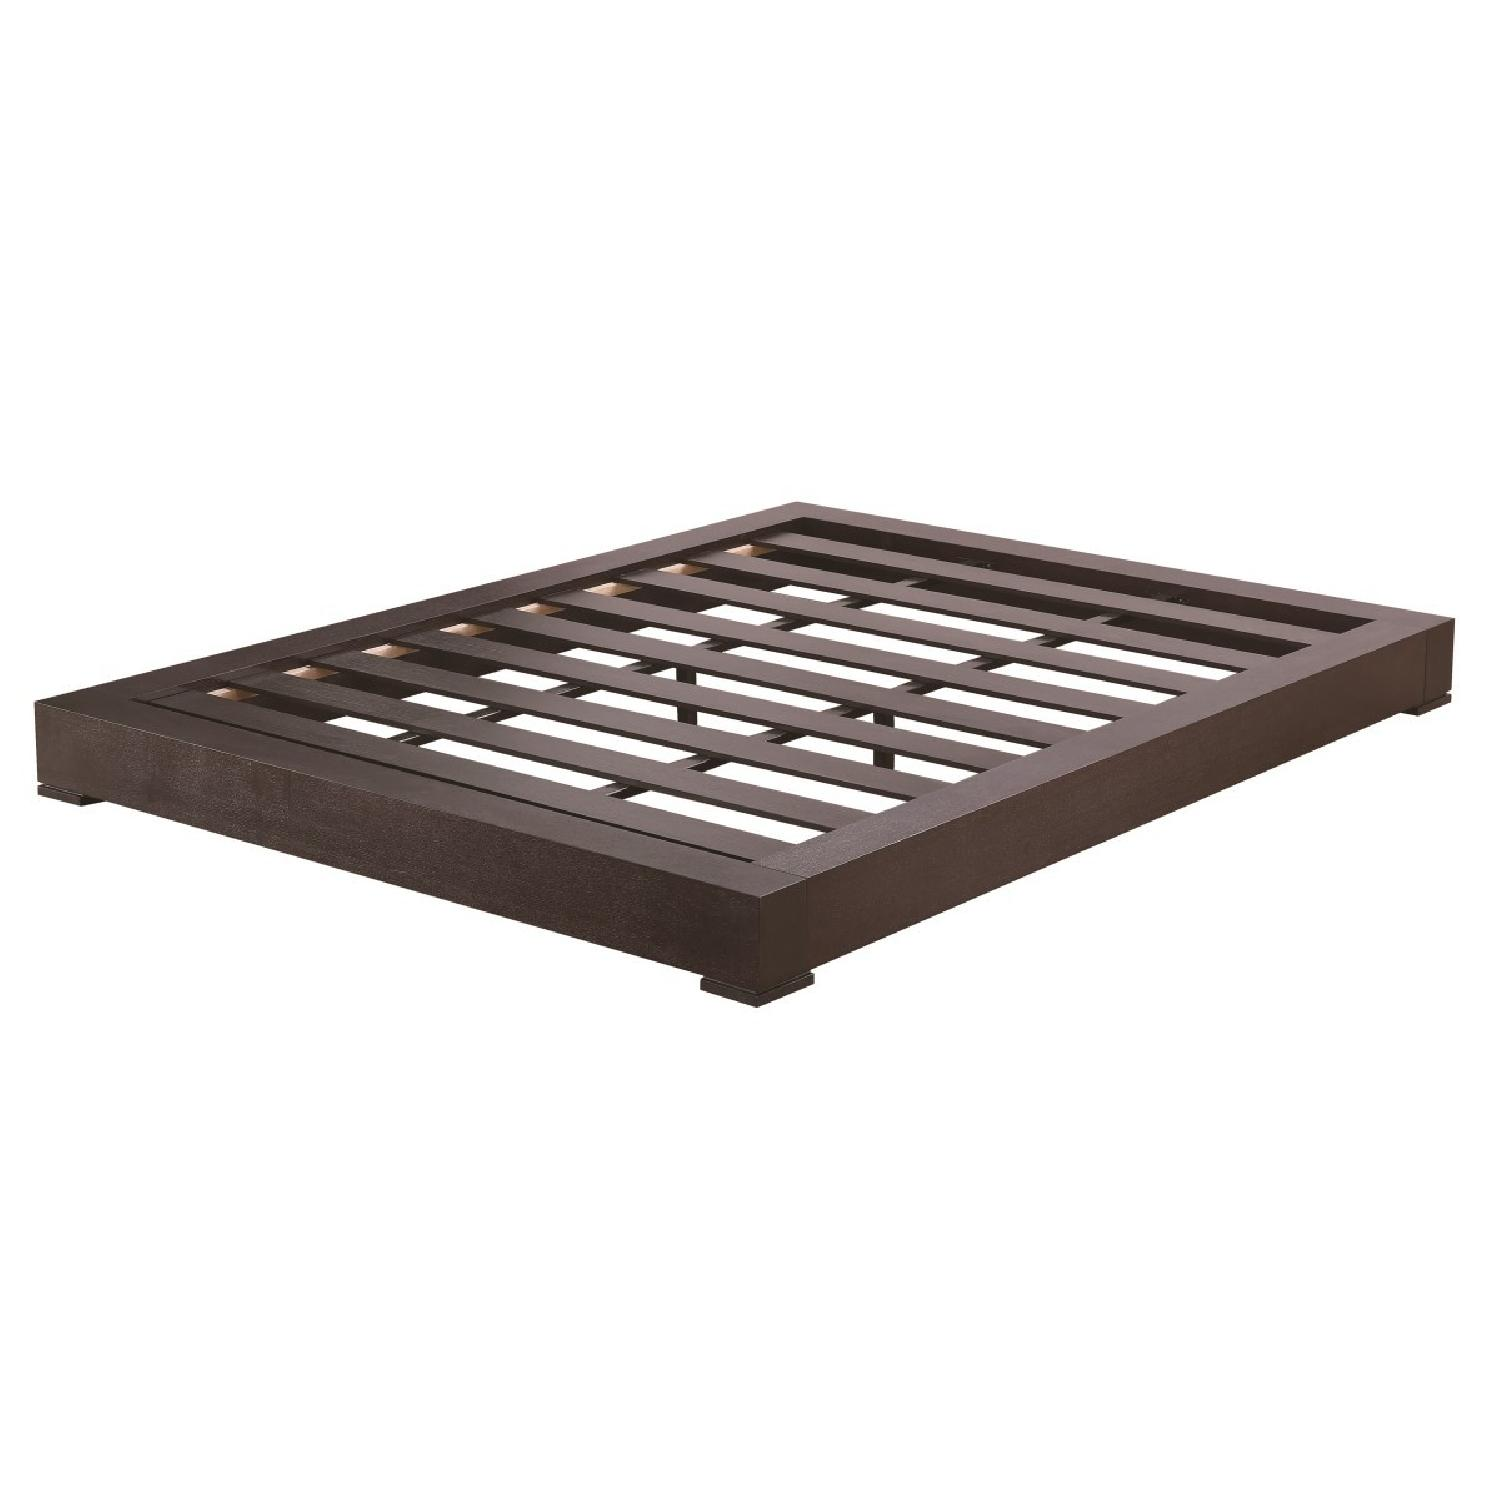 King Size Low-Profile Platform Bed in Espresso Finish